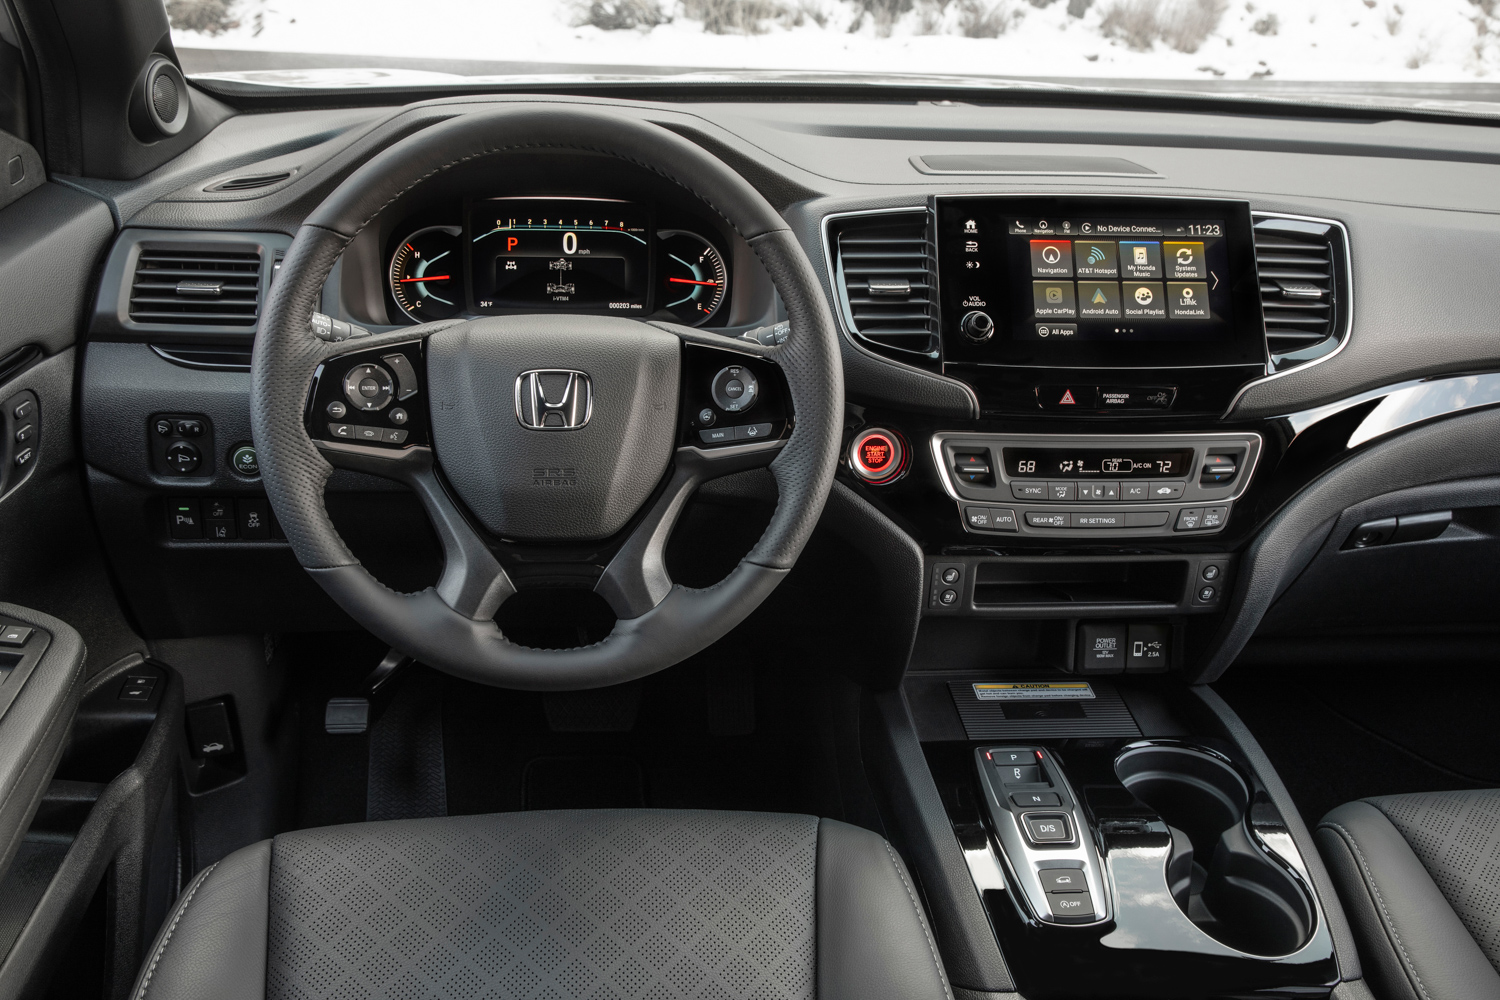 2019 Honda Passport dash and center stack